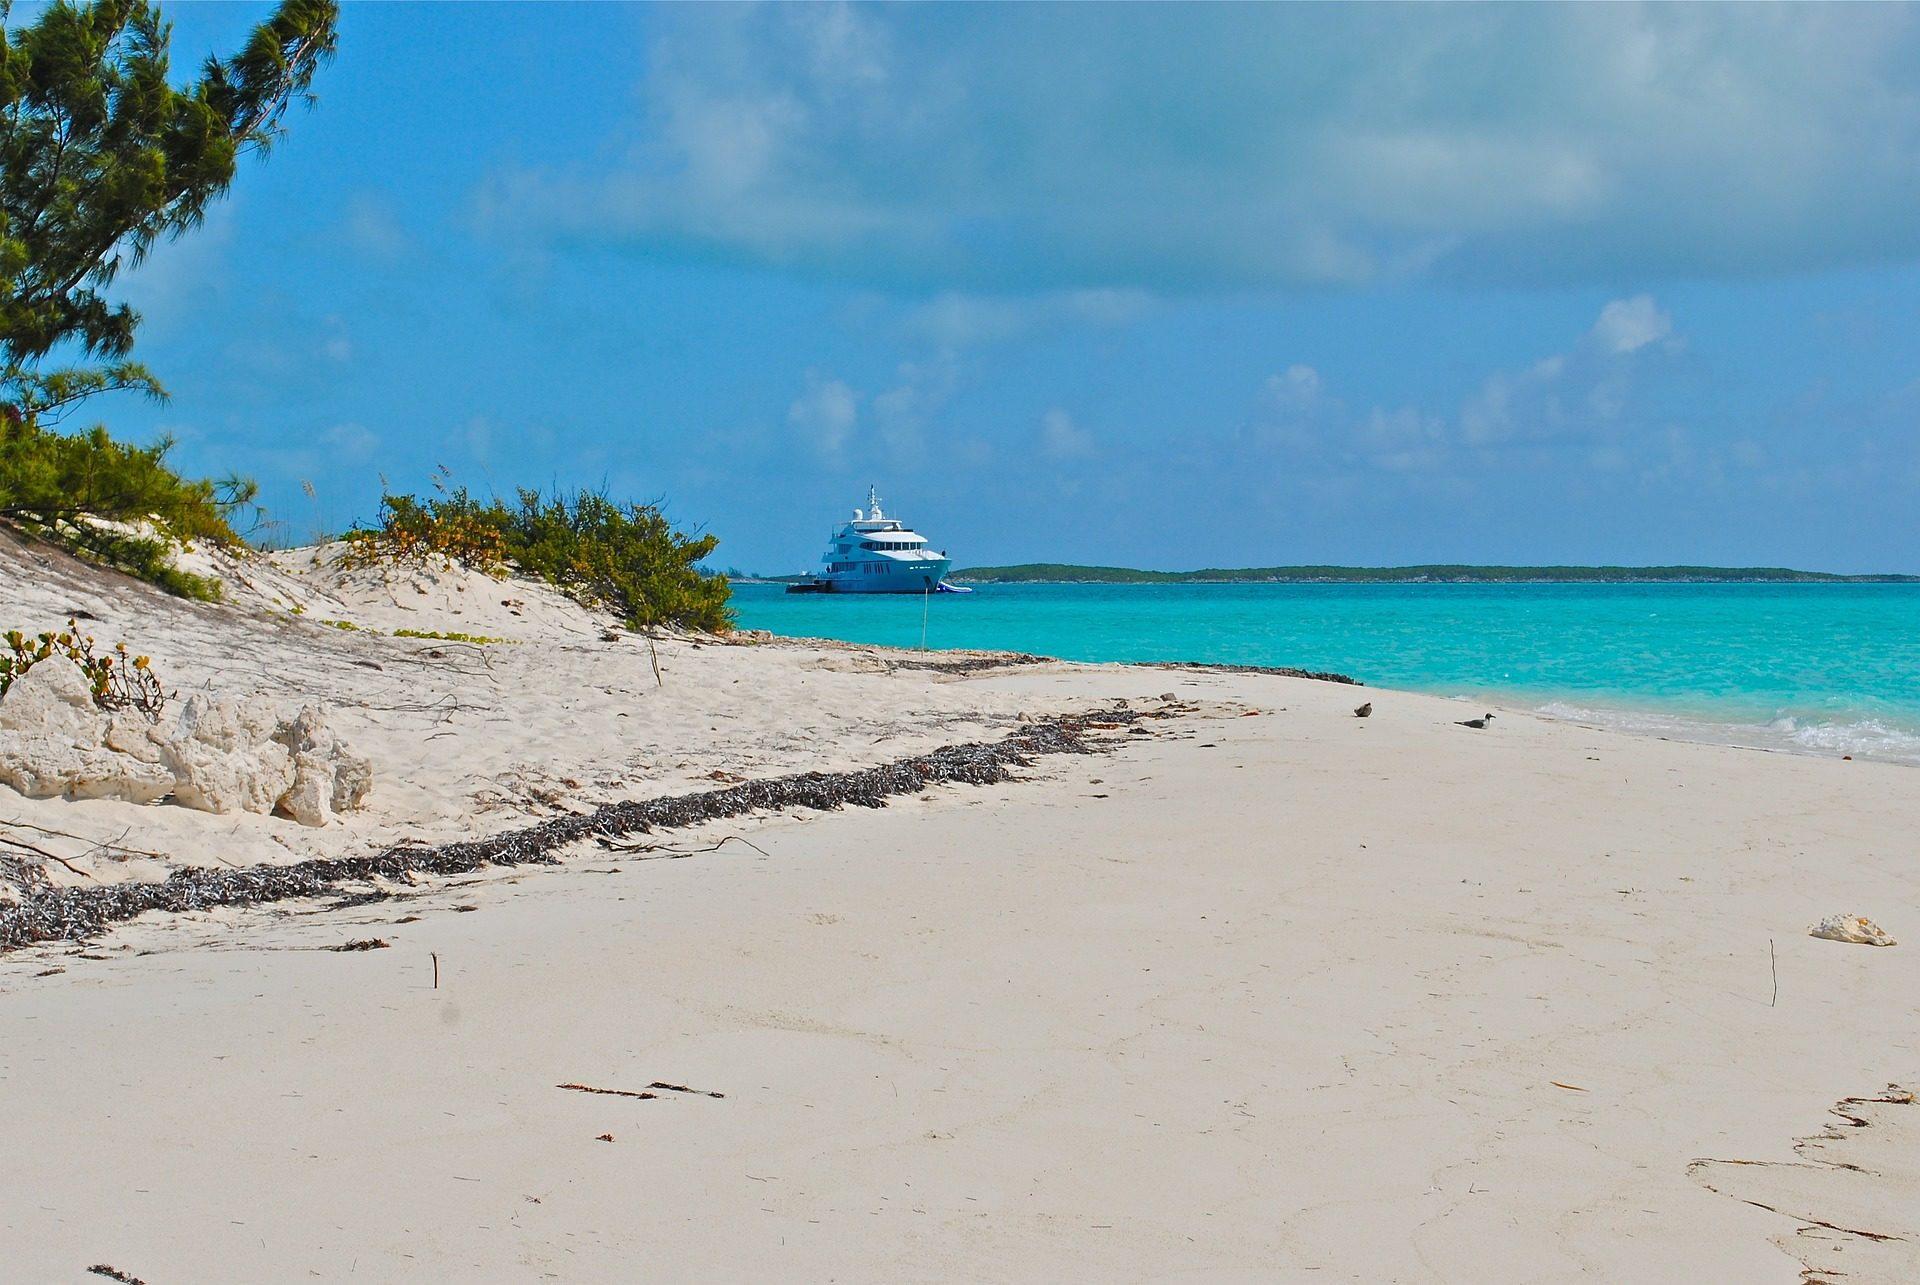 white sand beach of the Bahamas with turquoise waters and superyacht in the background